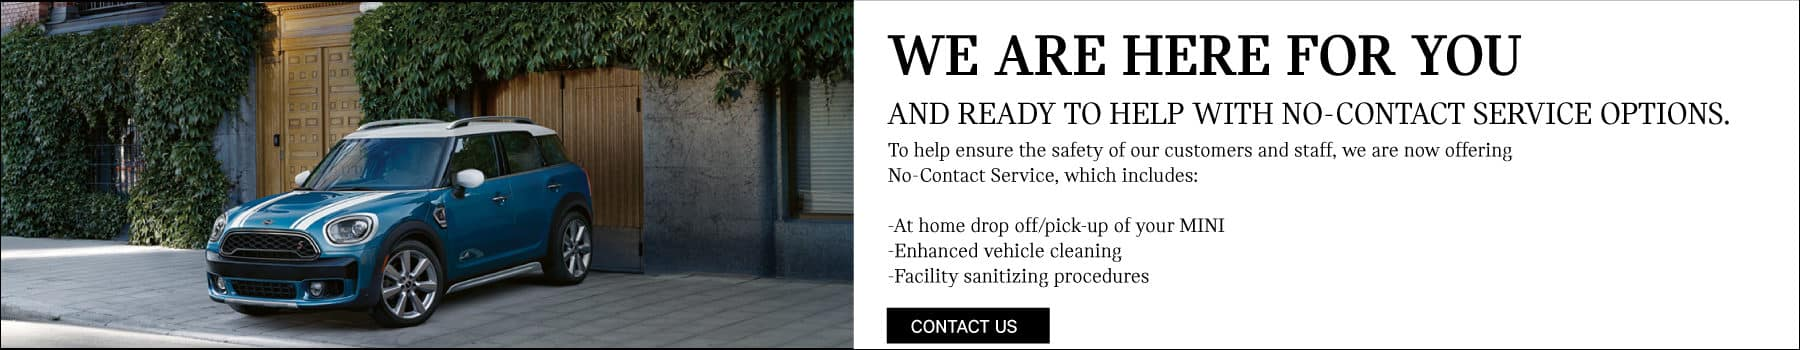 We are here for you and ready to help with no-contact services. Includes at home pick up and drop off with your MINI. Enhanced vehicle cleaning. Facility sanitizing procedures.